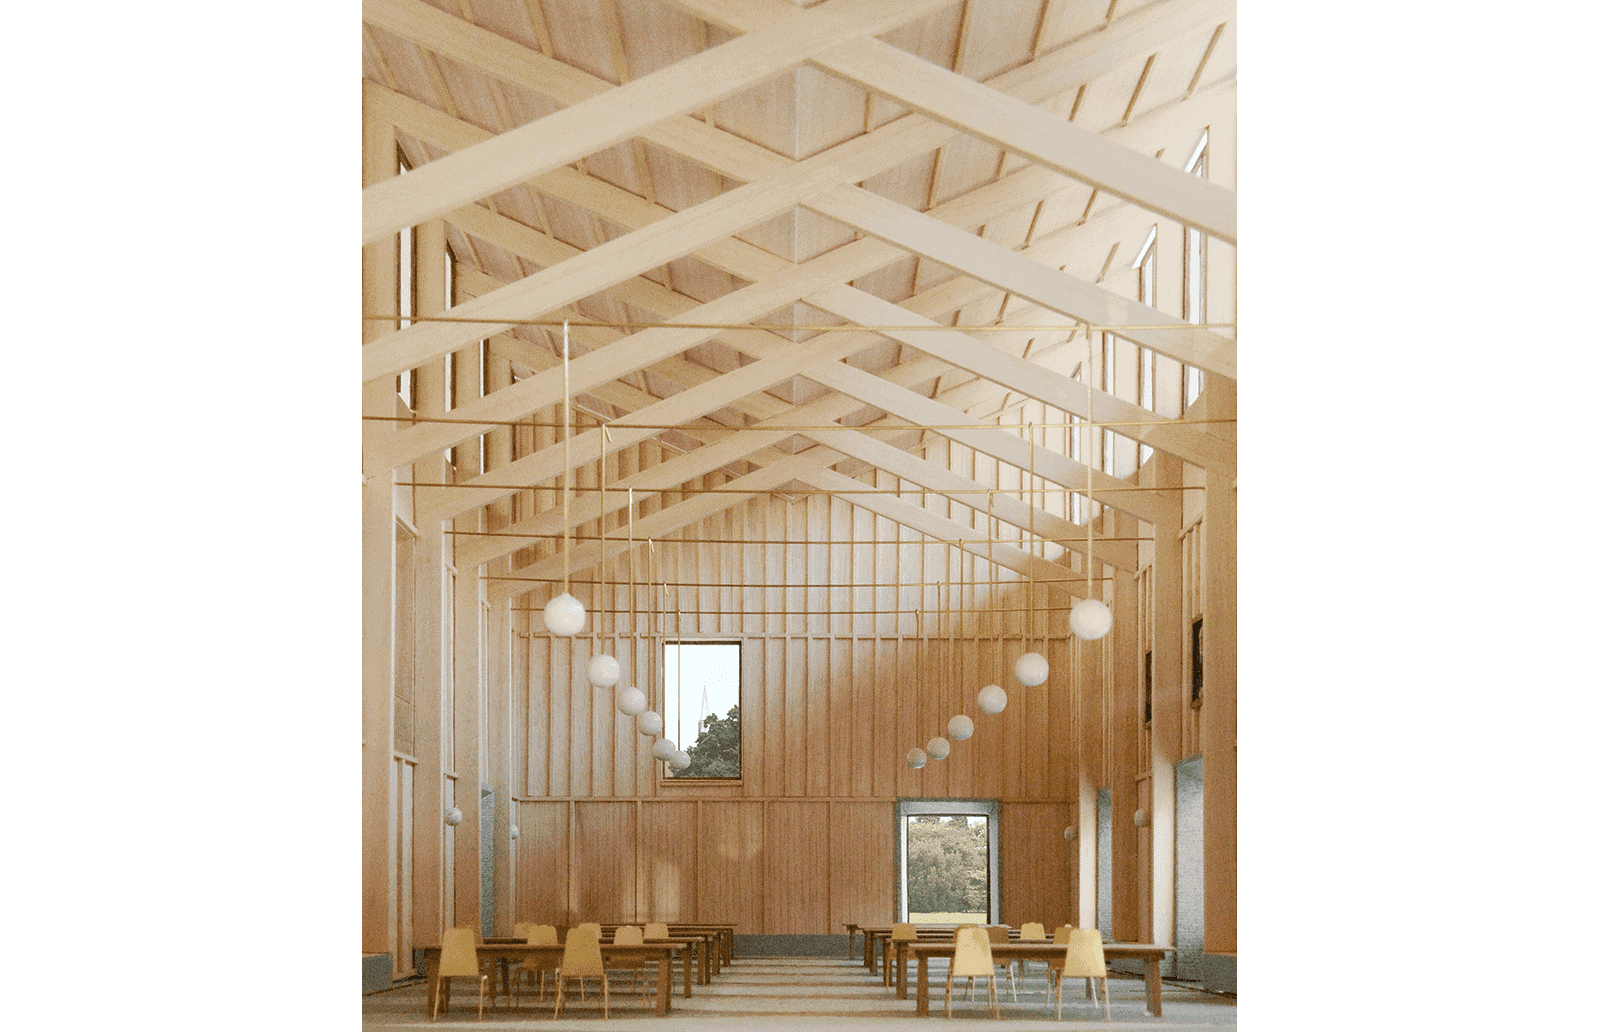 feilden fowles london based architecture practice education